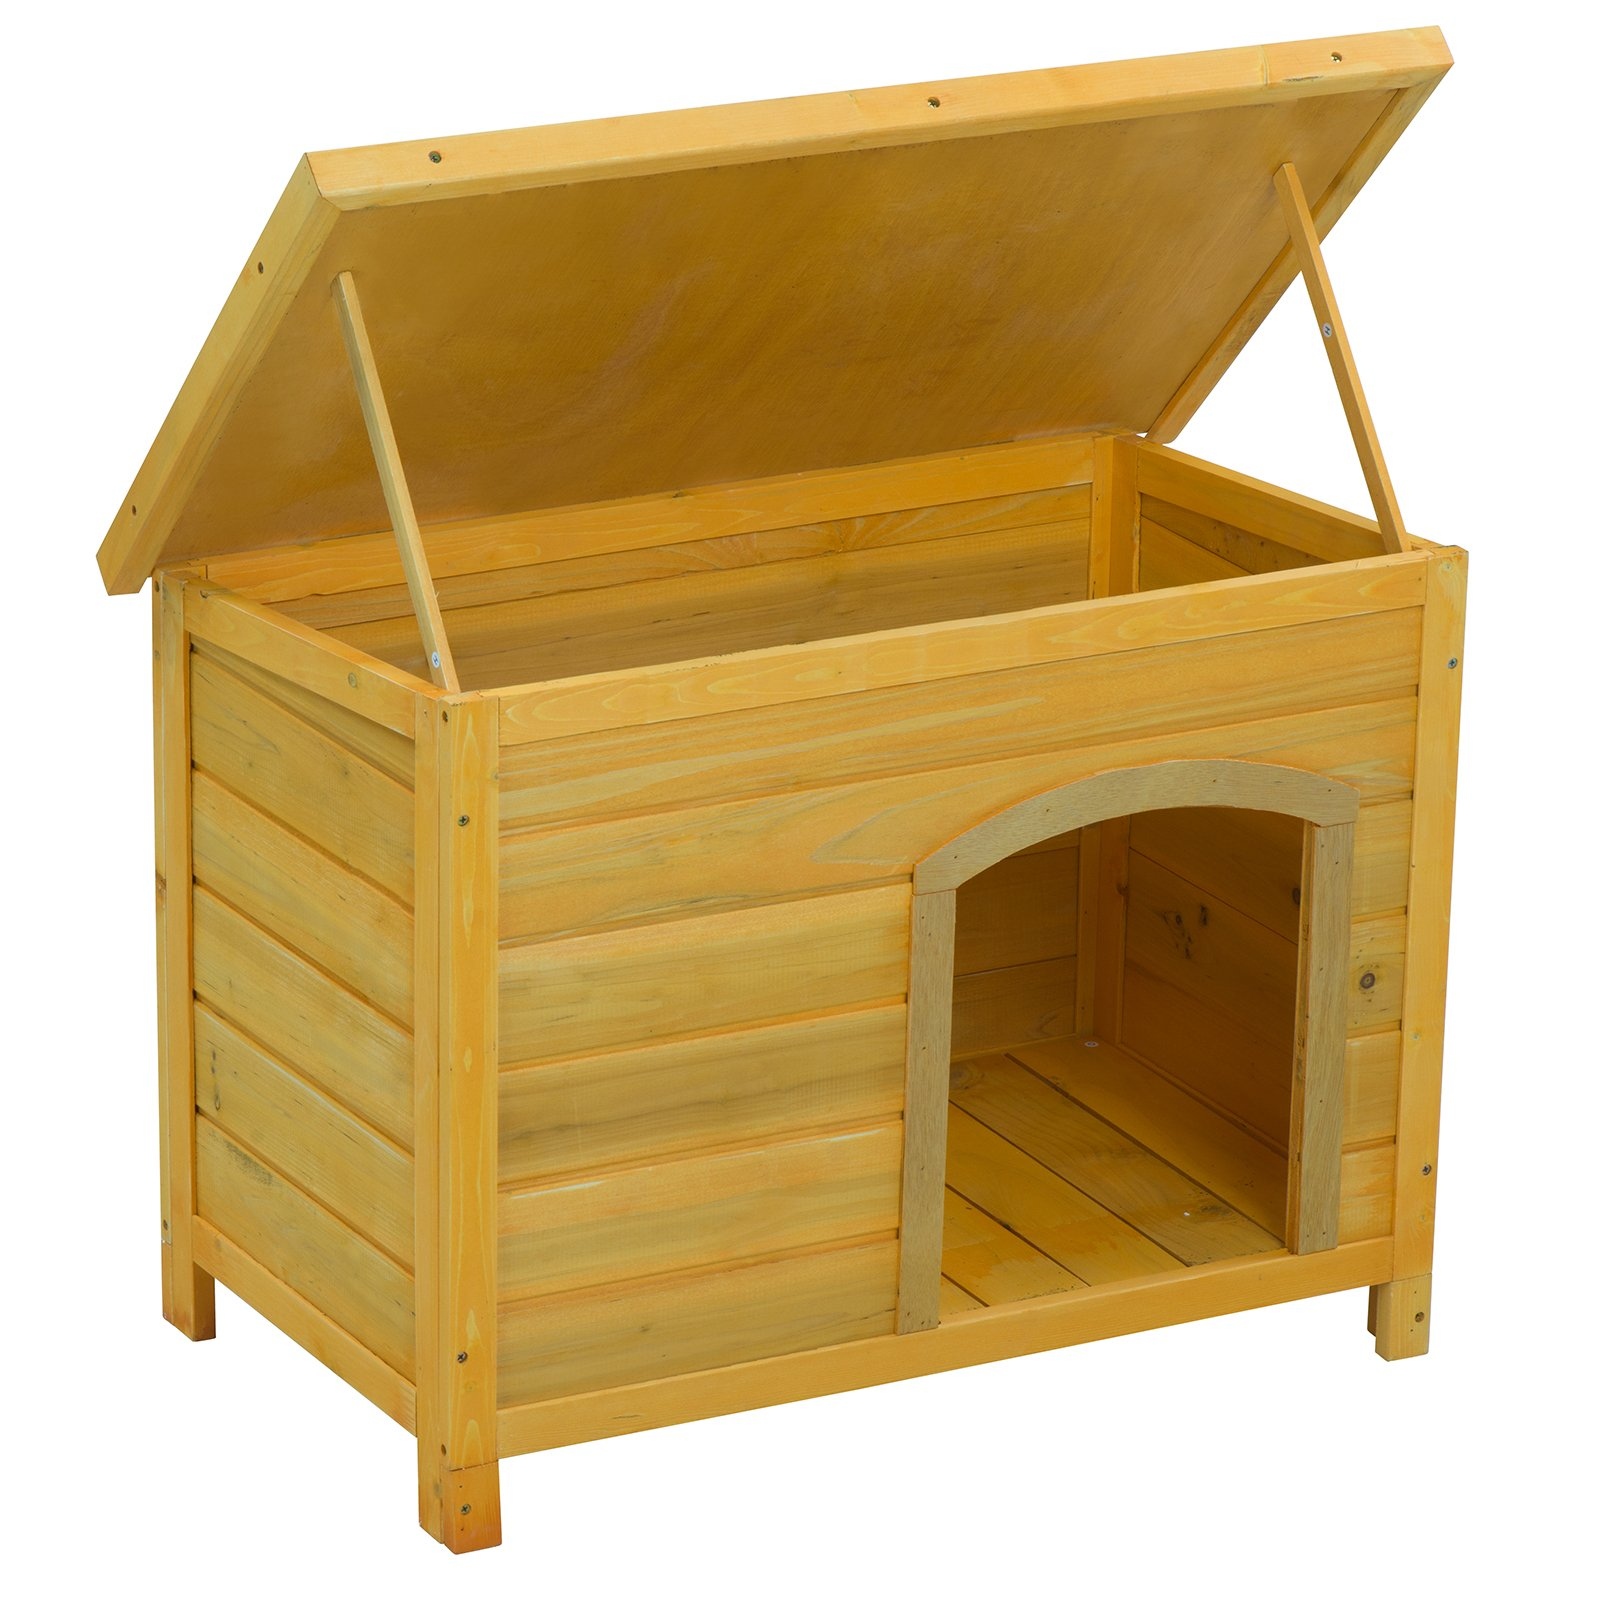 SUNCOO Fir Wooden Dog House Kennel Pet Puppy Home Indoor Outdoor Weather Resistant with Hinged Roof and Shelter 33x20x24 Inches